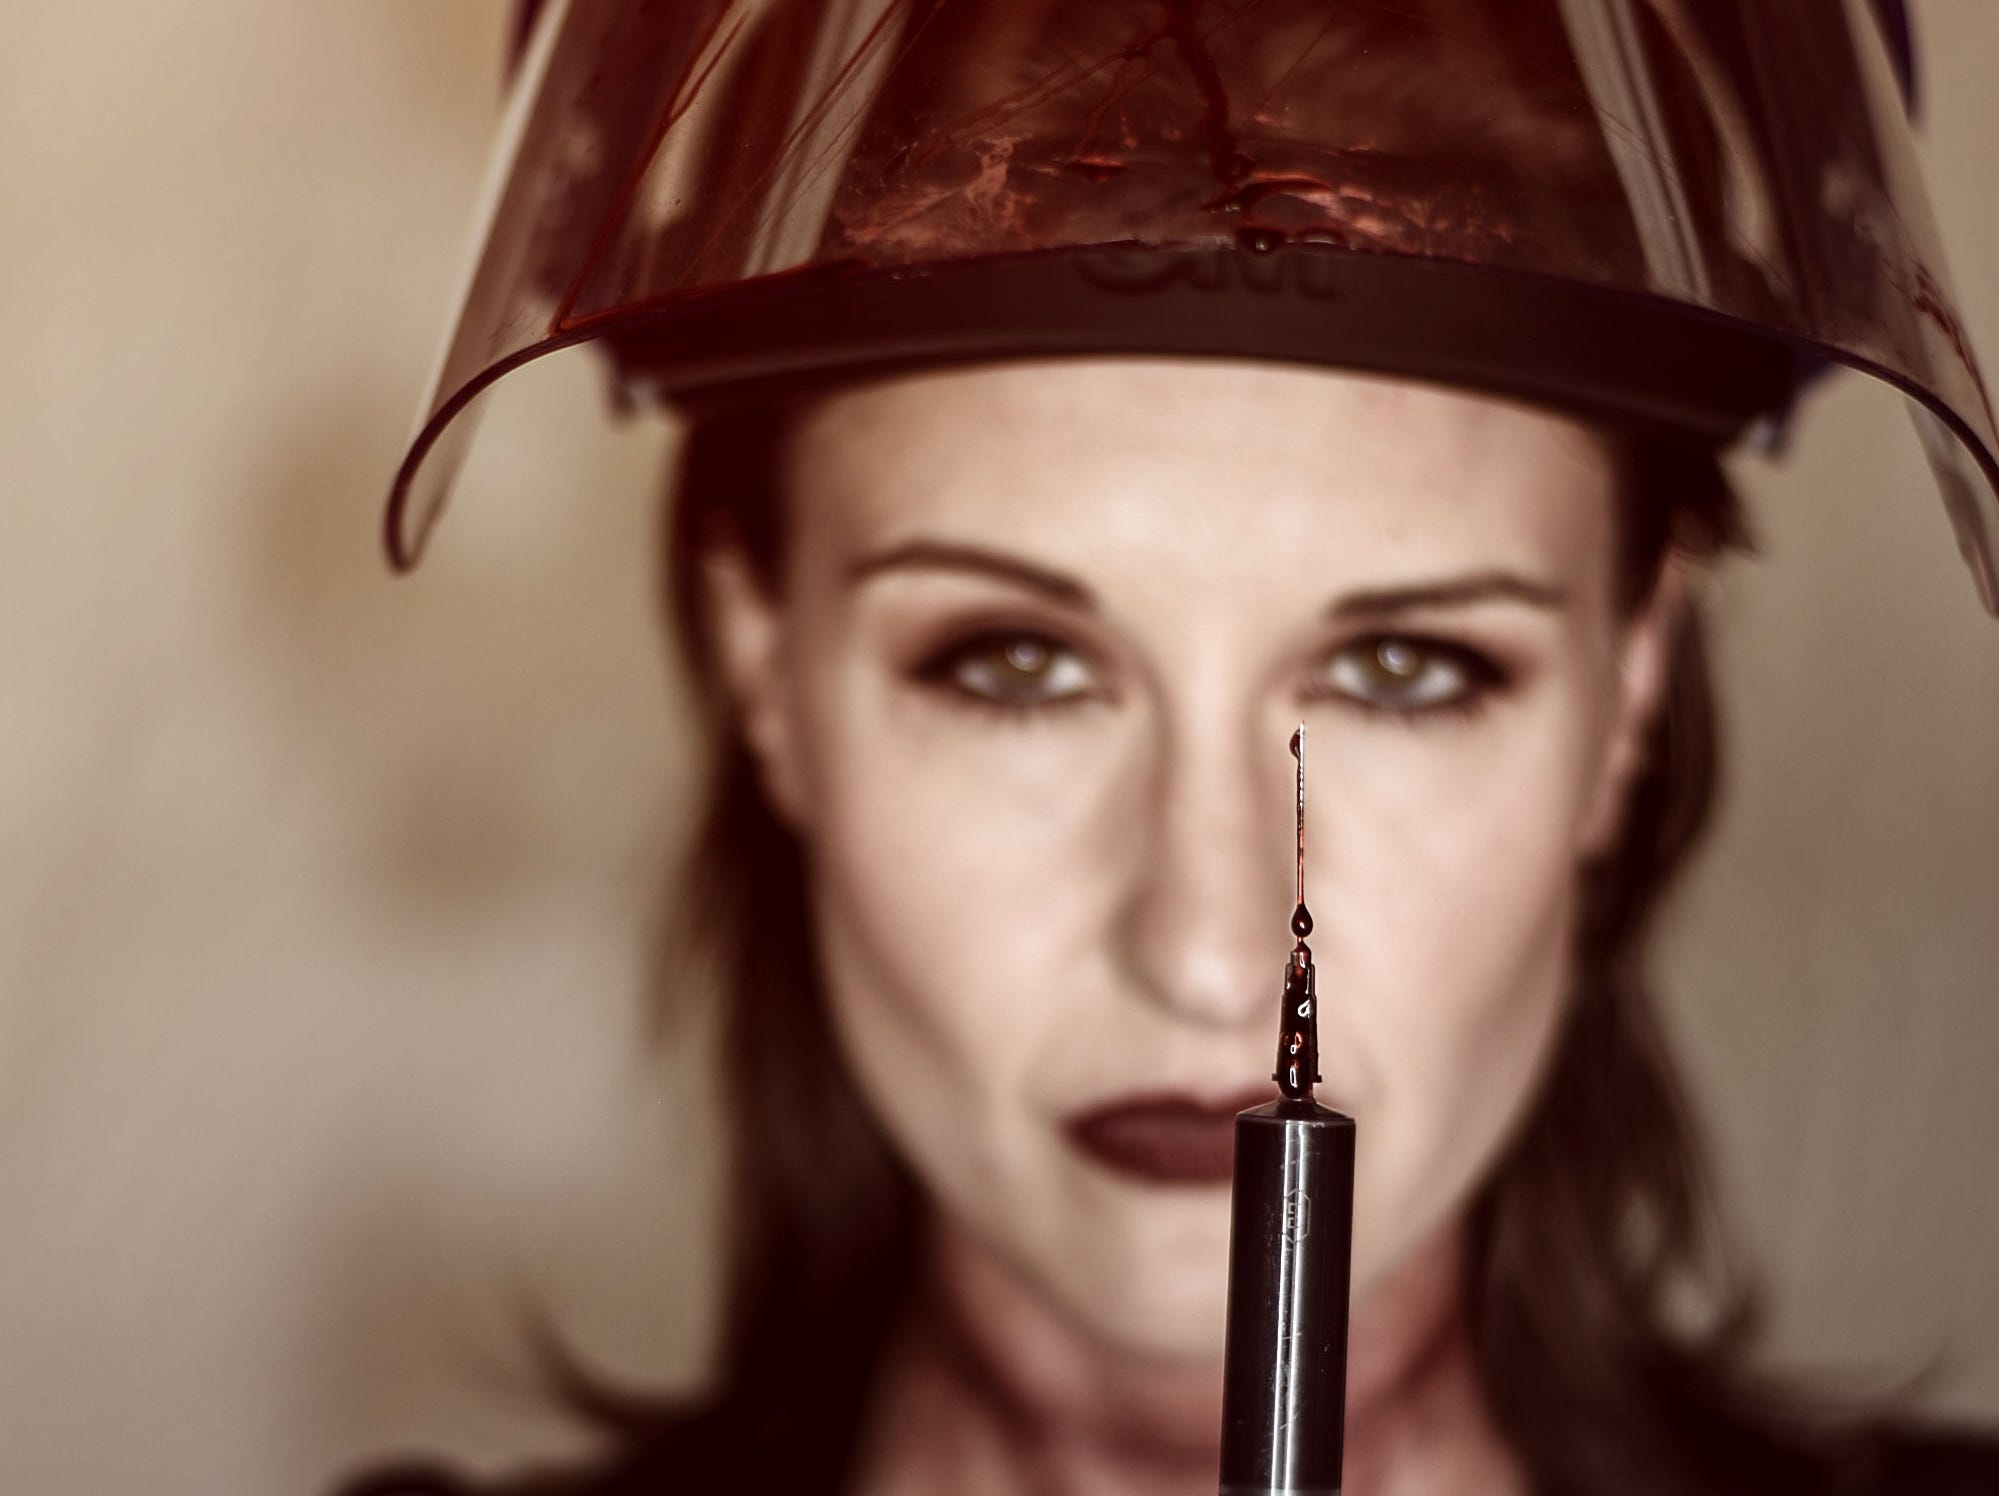 Lori Cannon as the physician in this horror-themed photo session by Mallory Bertrand. Special effects by Ash Mac.